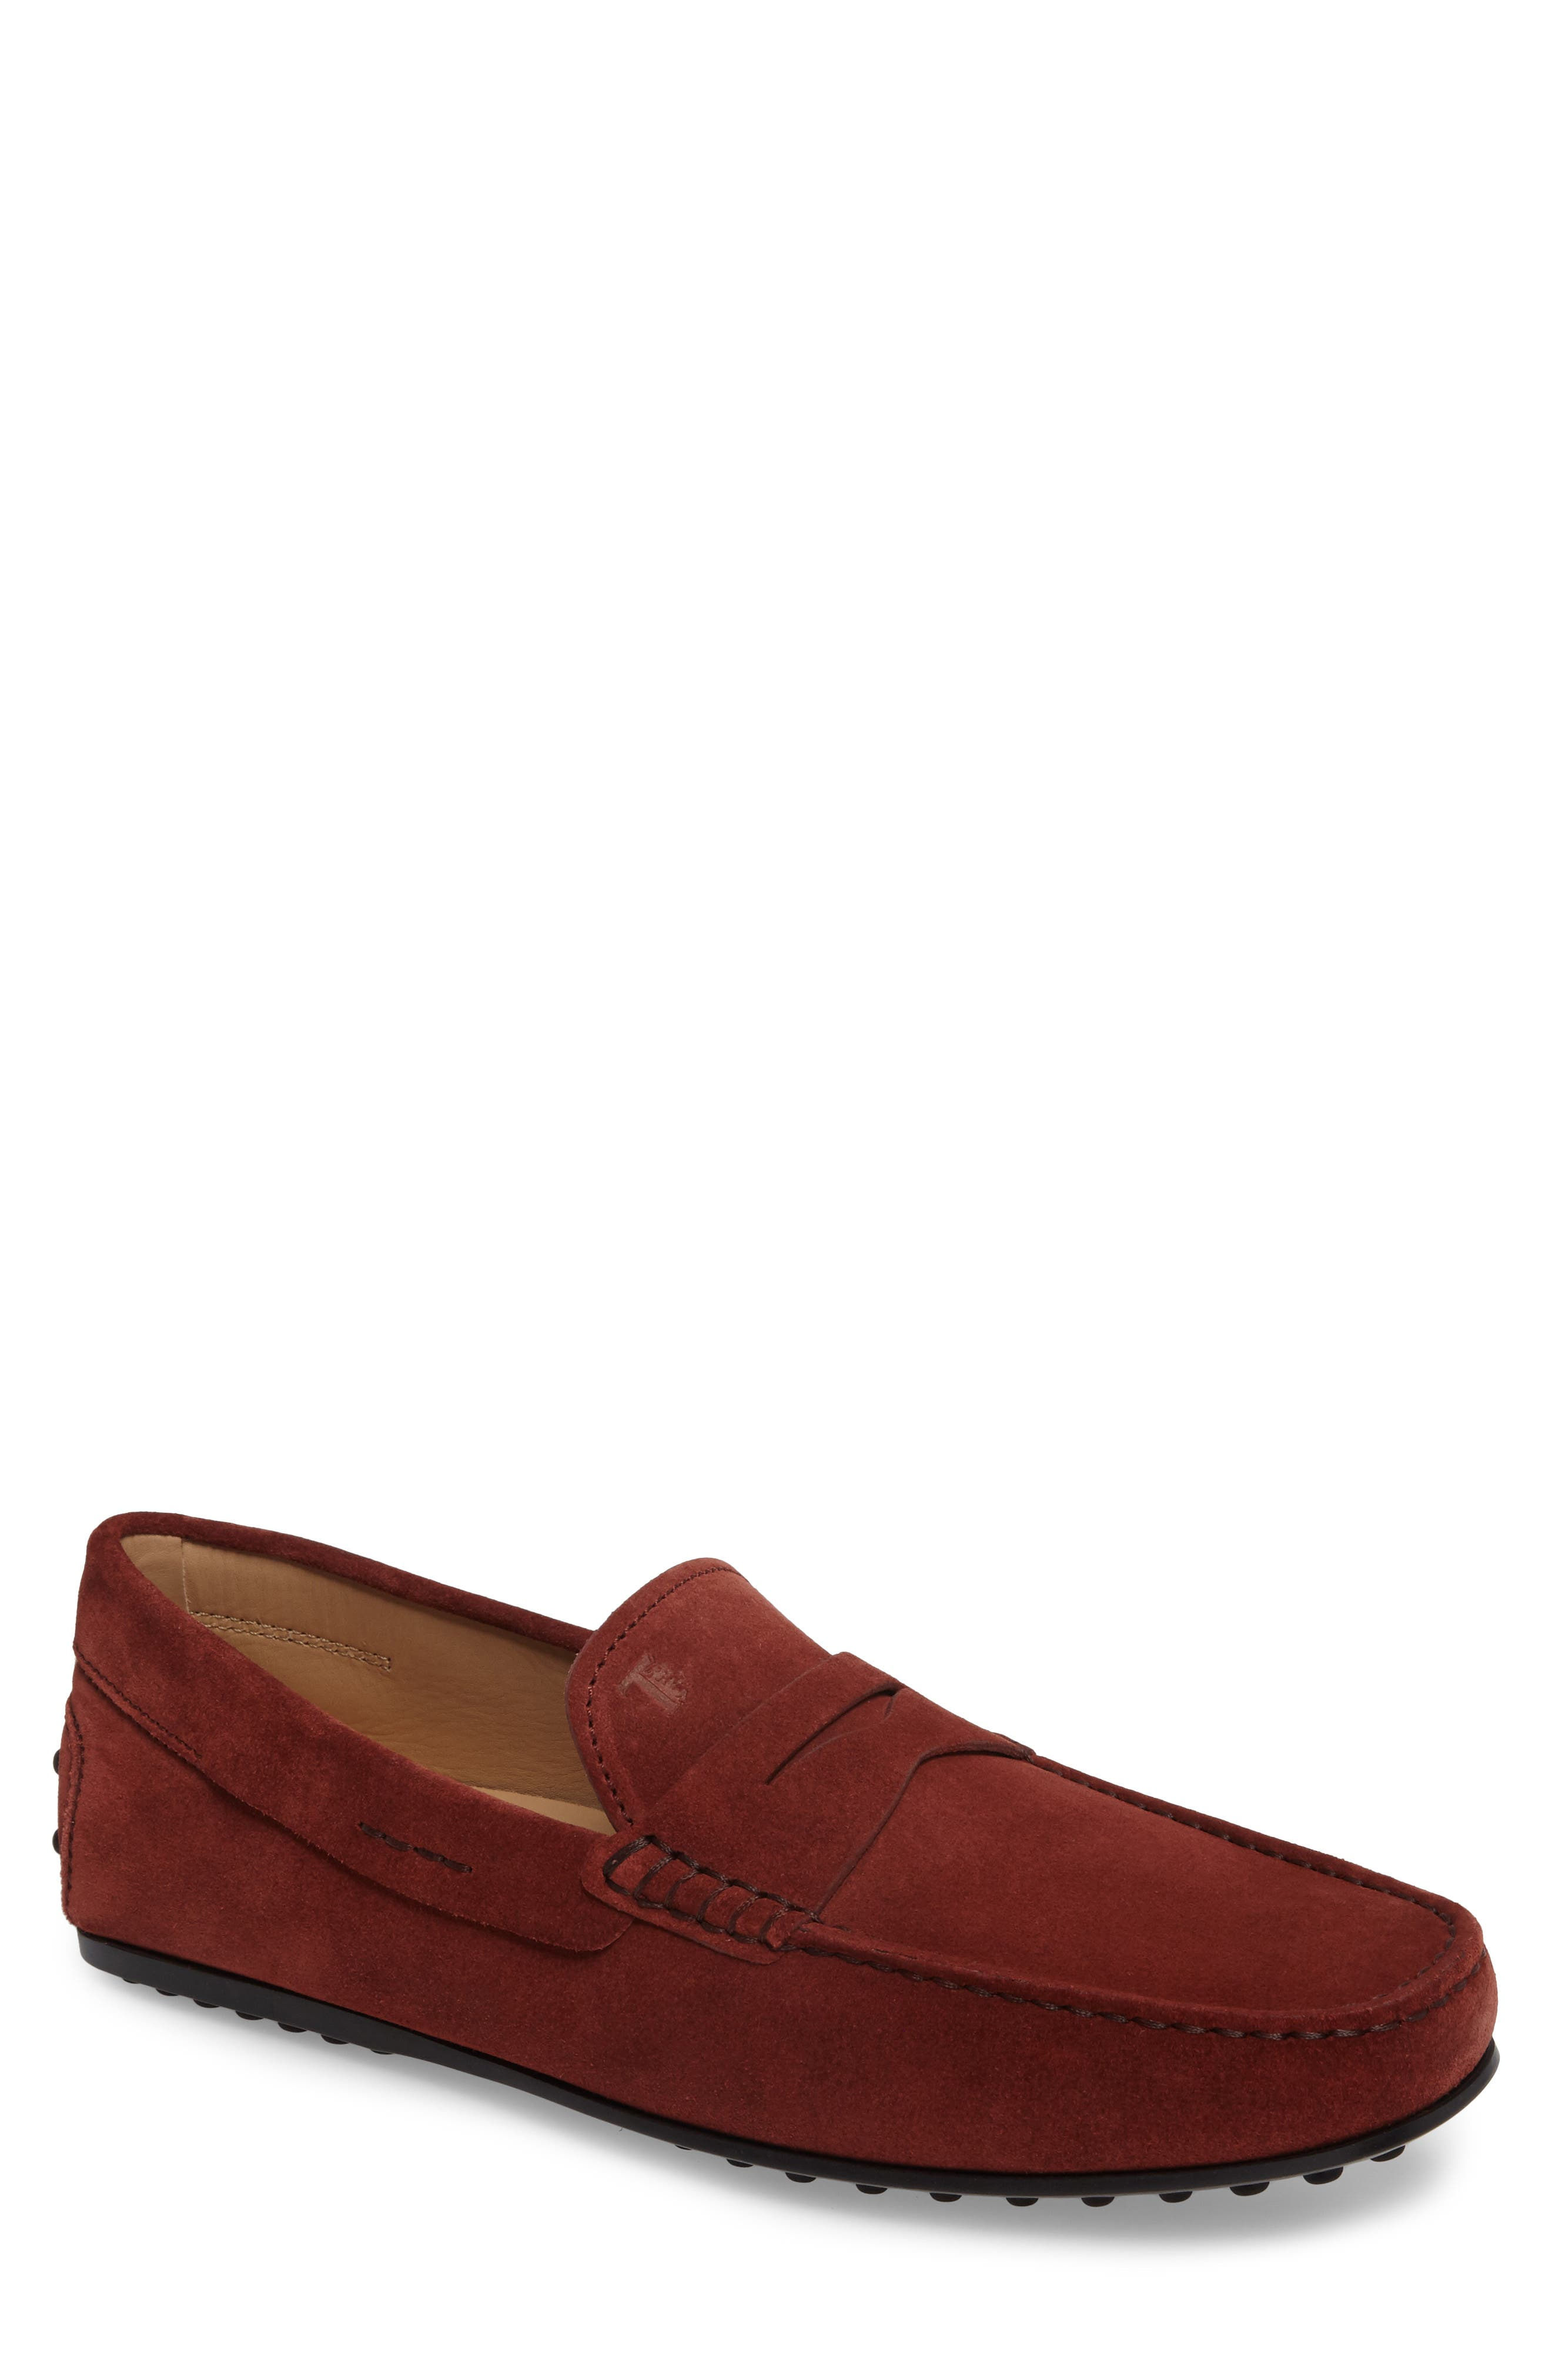 'City' Penny Driving Shoe,                             Main thumbnail 1, color,                             Burgundy Suede